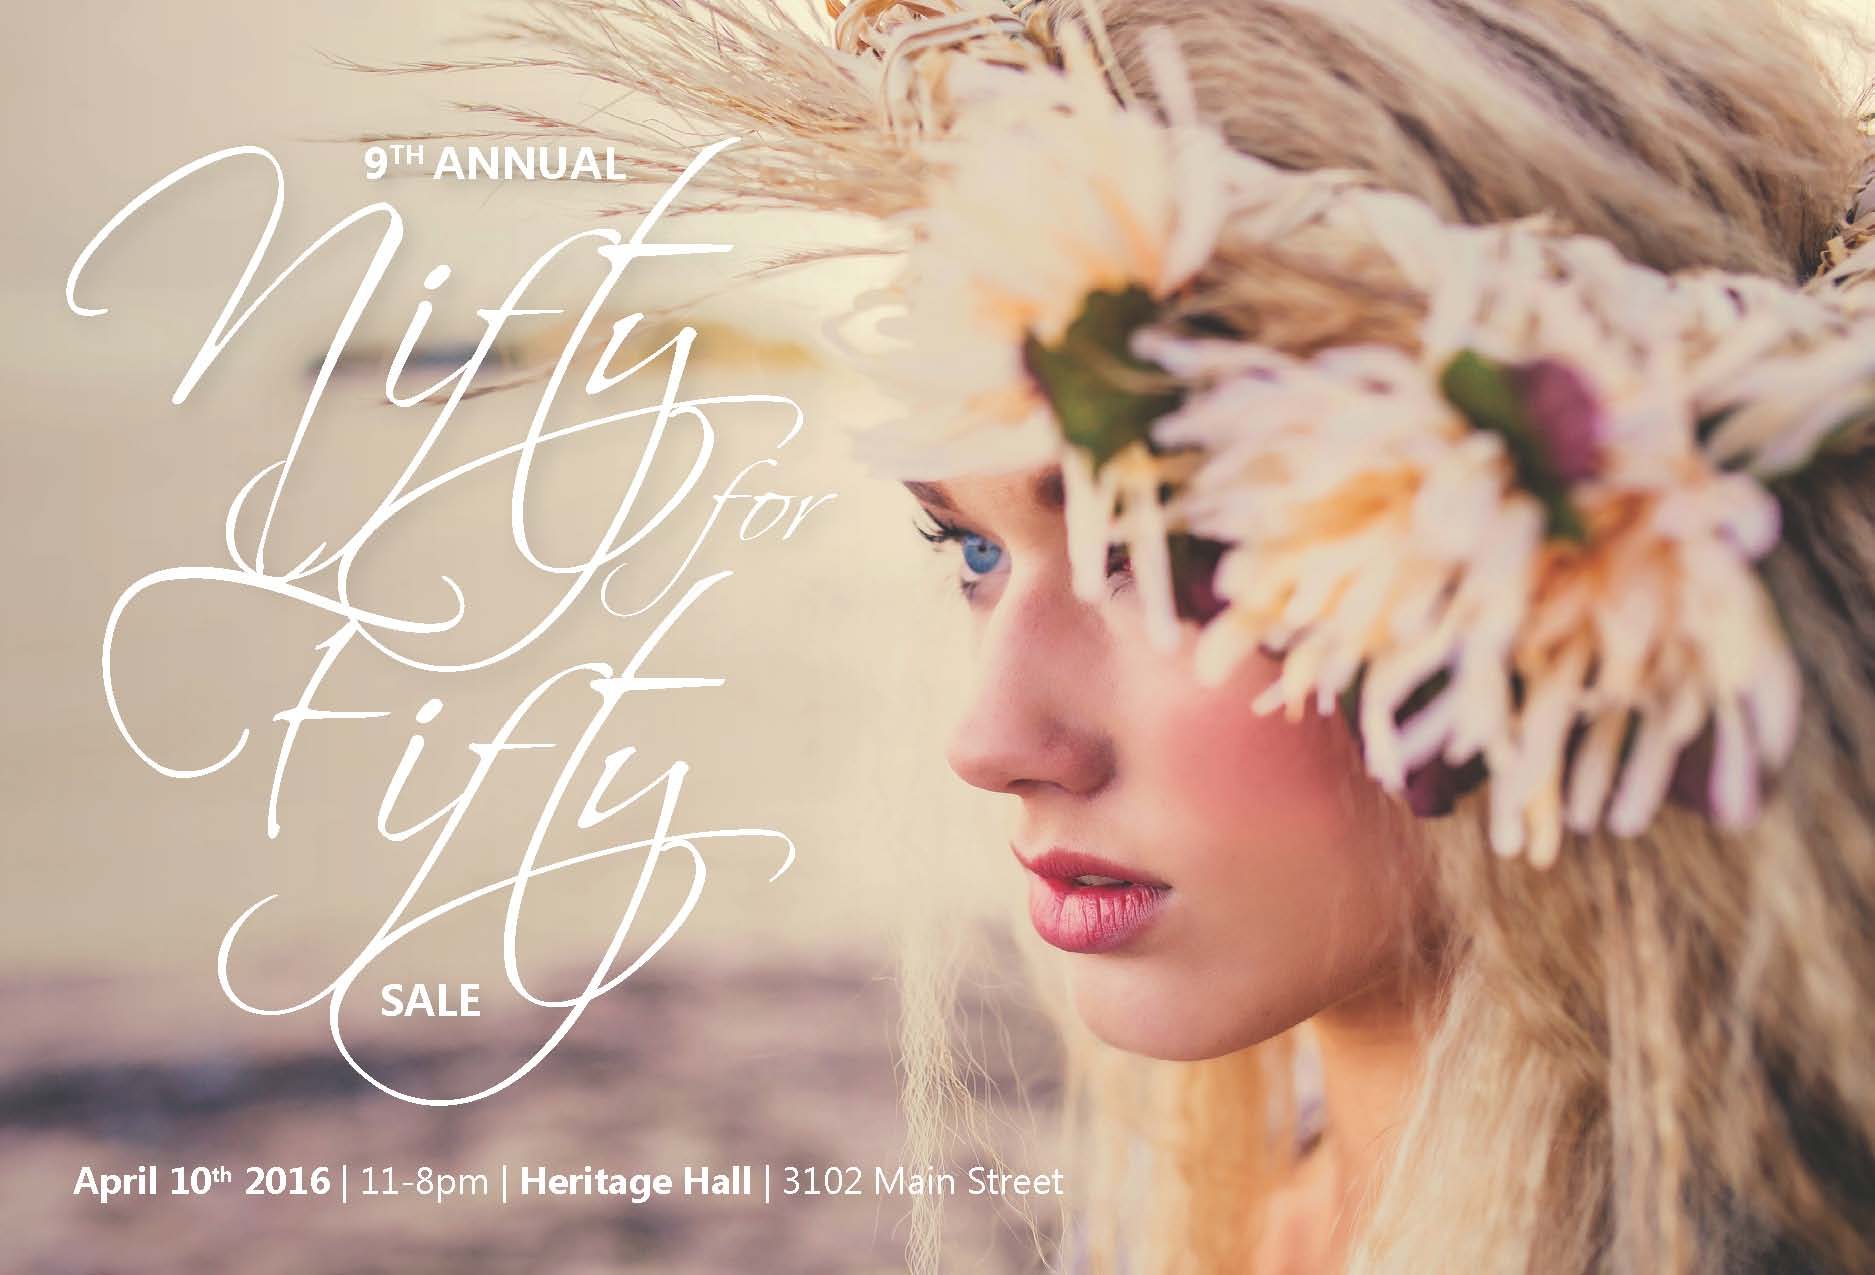 9th Annual Nifty for Fifty Indie Designer Blowout Sale at the Heritage Hall Vancouver